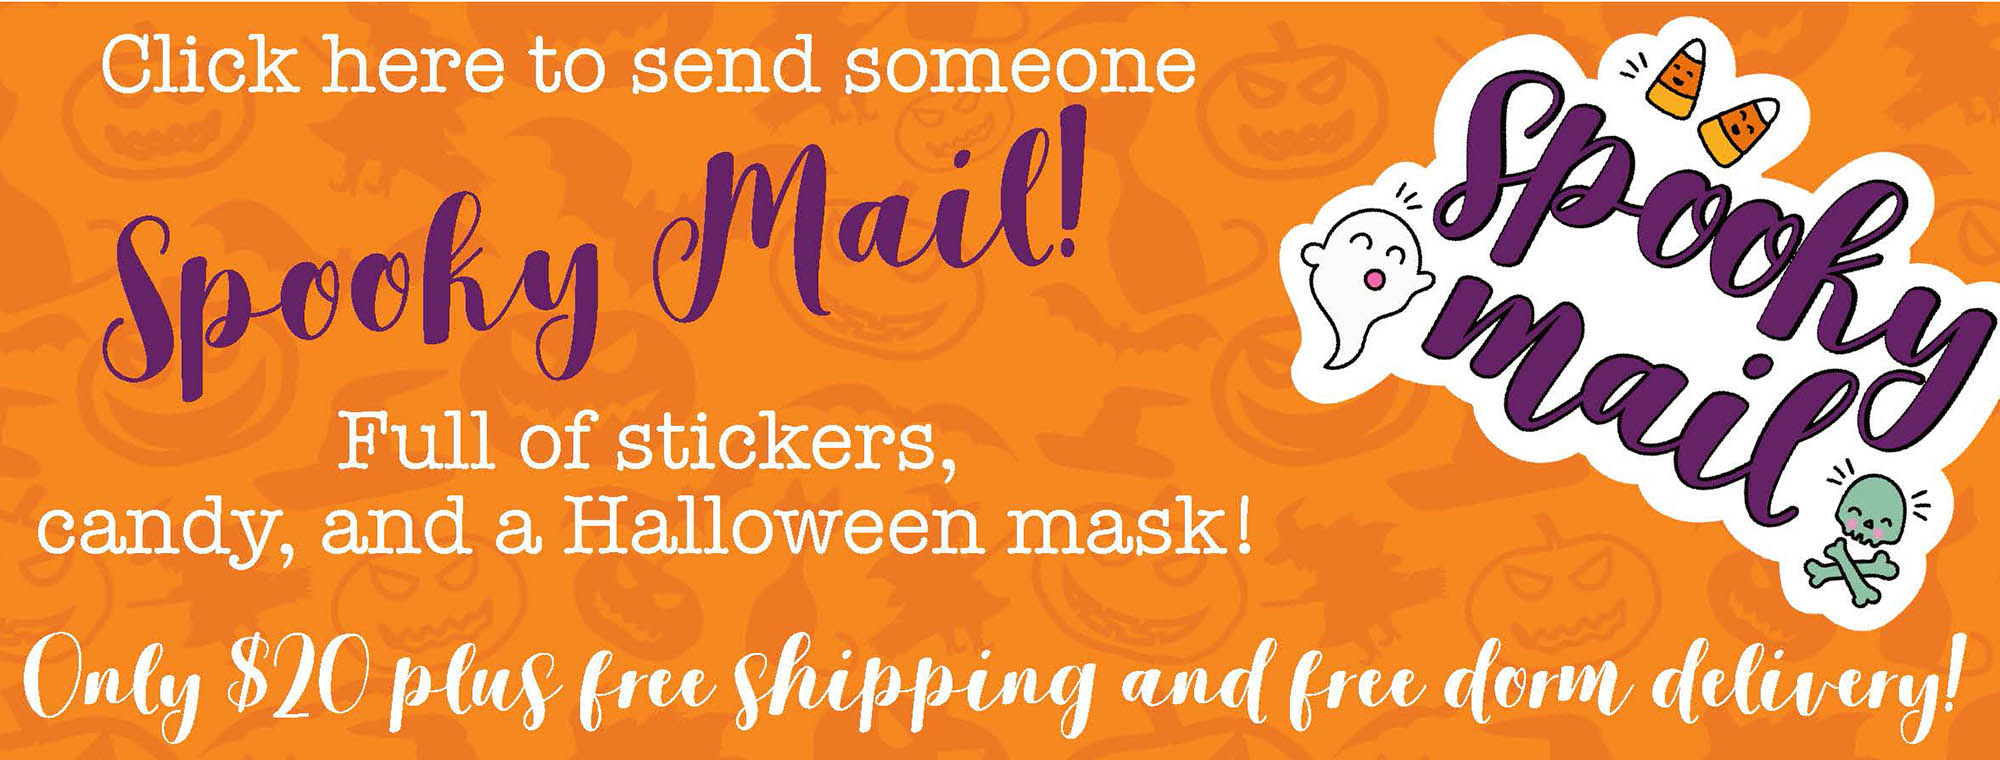 order spooky mail